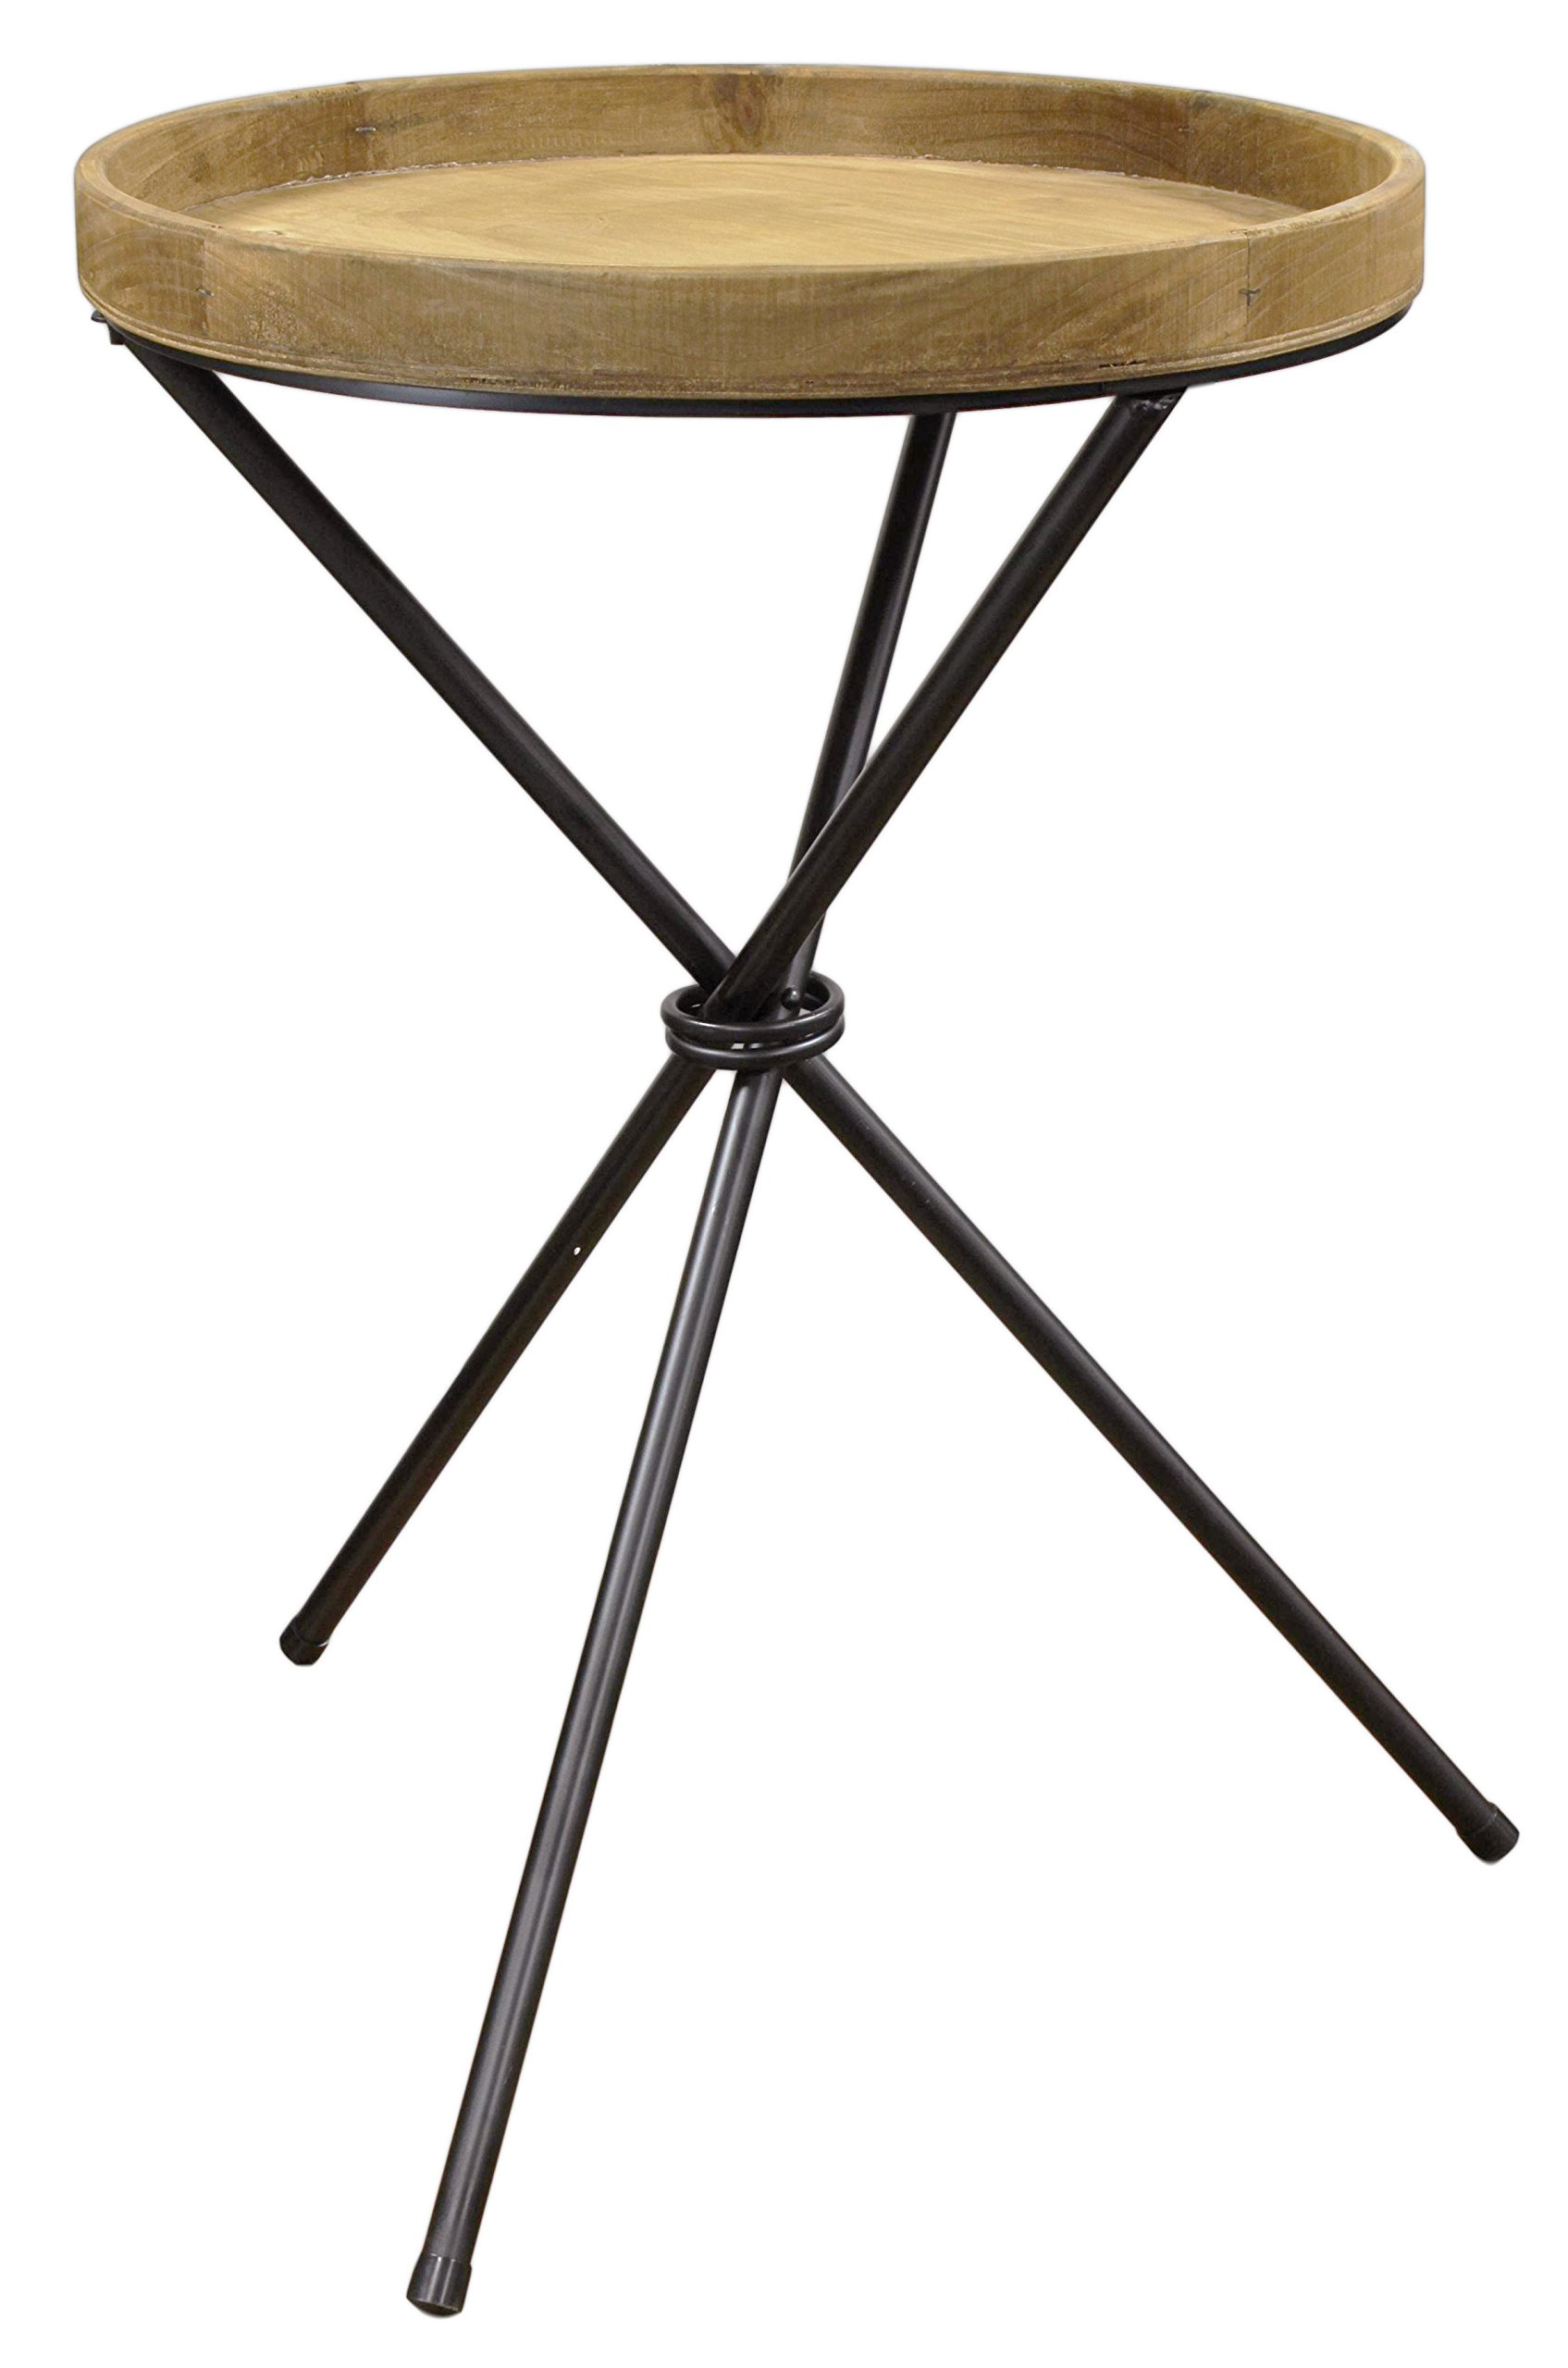 Lucky Winner Round Side Table Natural Light Wood Stain with Metal Legs 31''